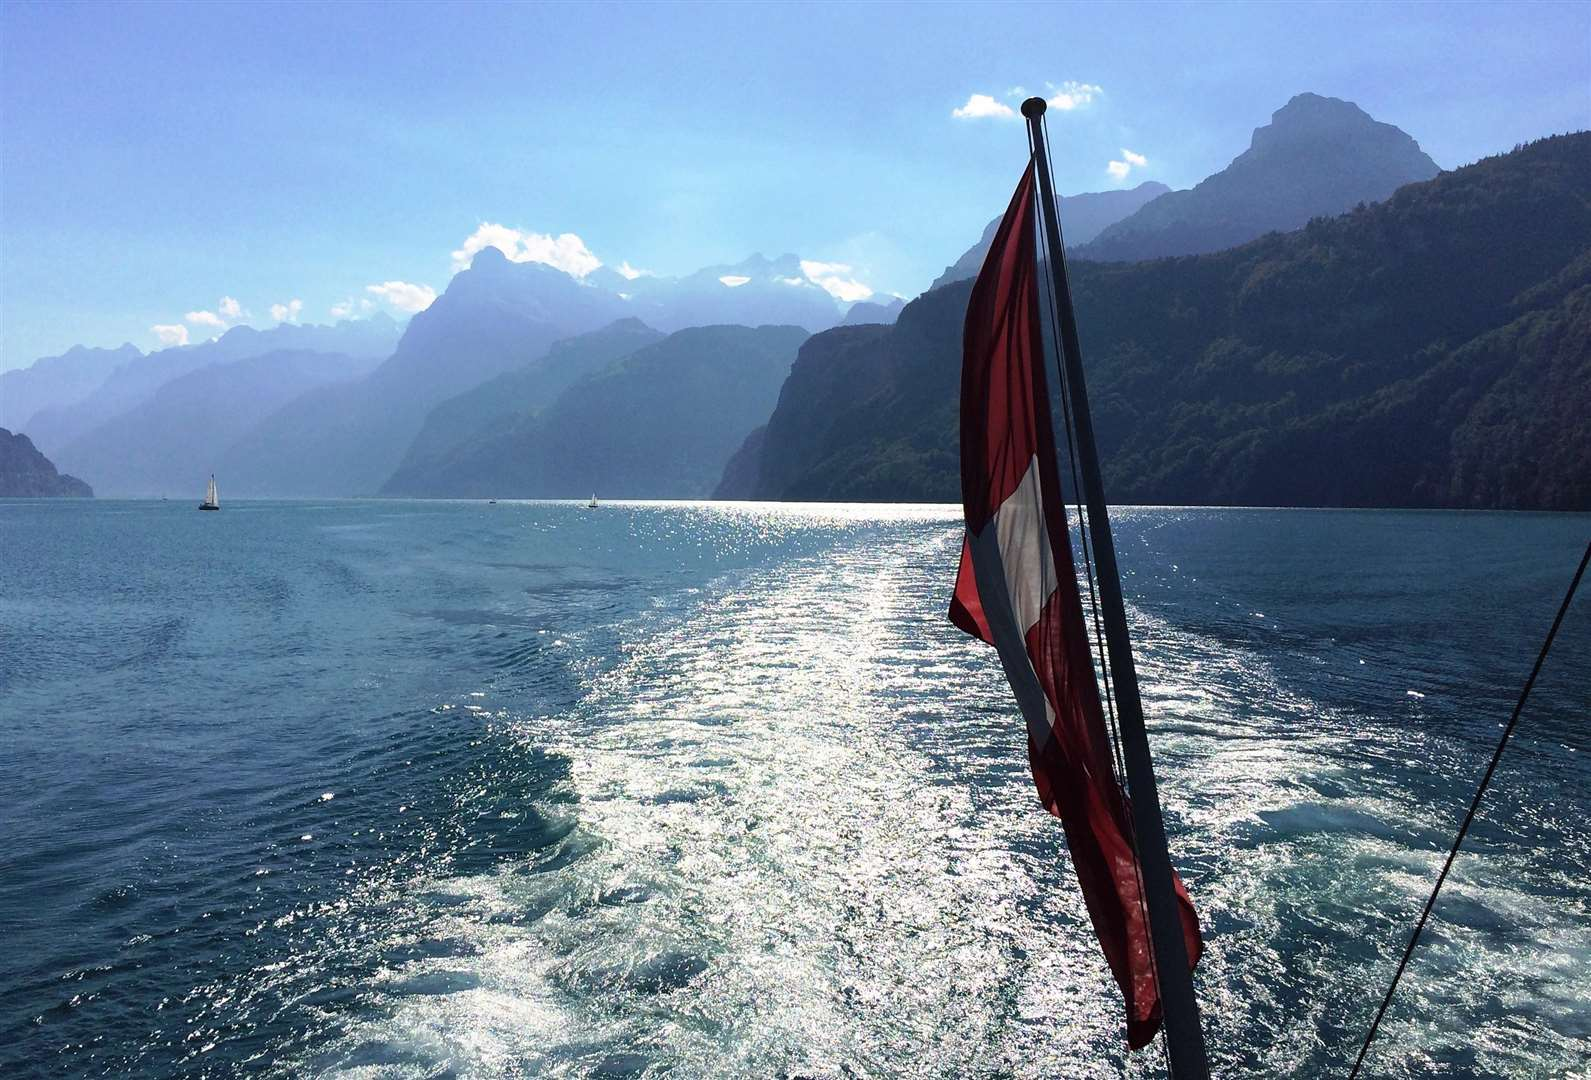 Sailing on Lake Lucerne.